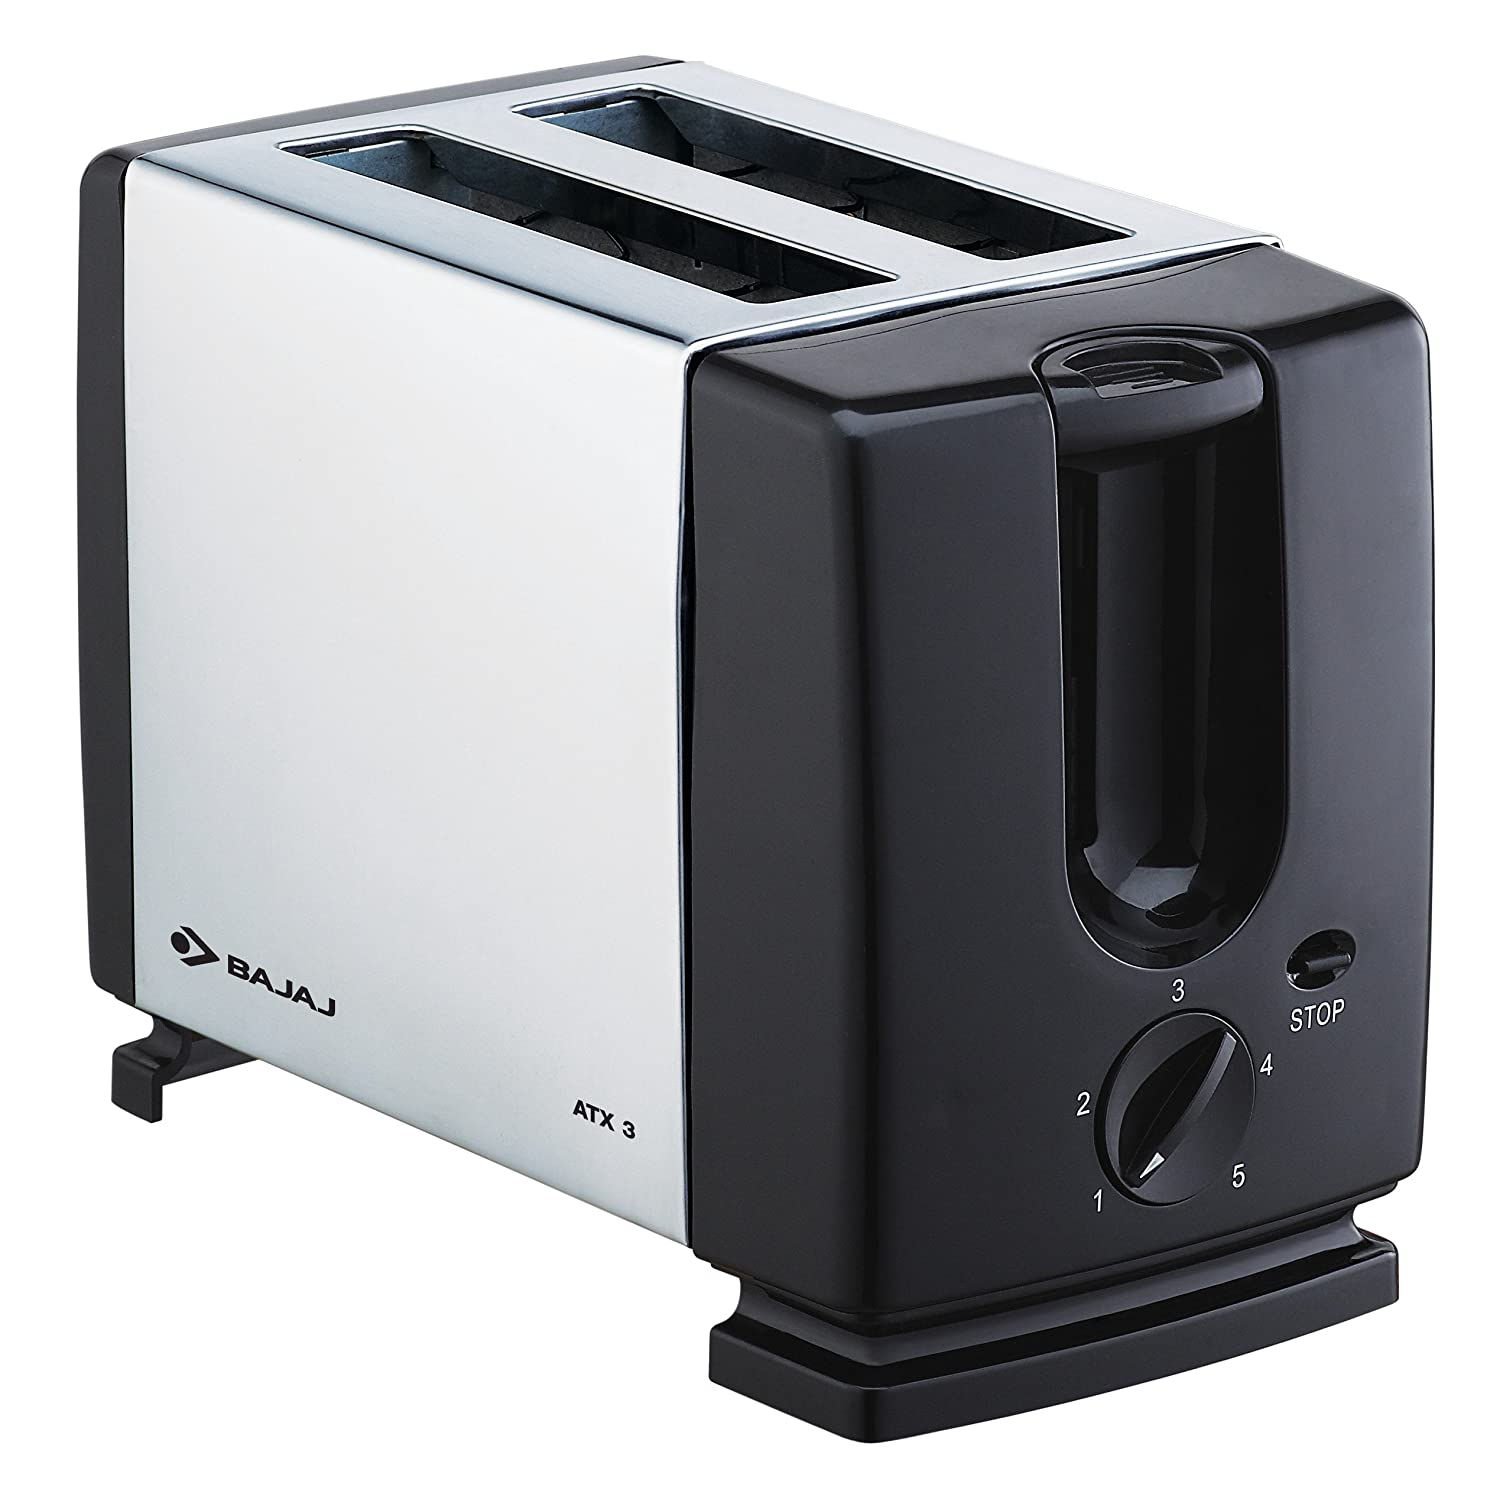 Buy Bajaj ATX 3 Metallic Auto Pop-up Toaster Online at Low Prices ... | {Toaster 37}